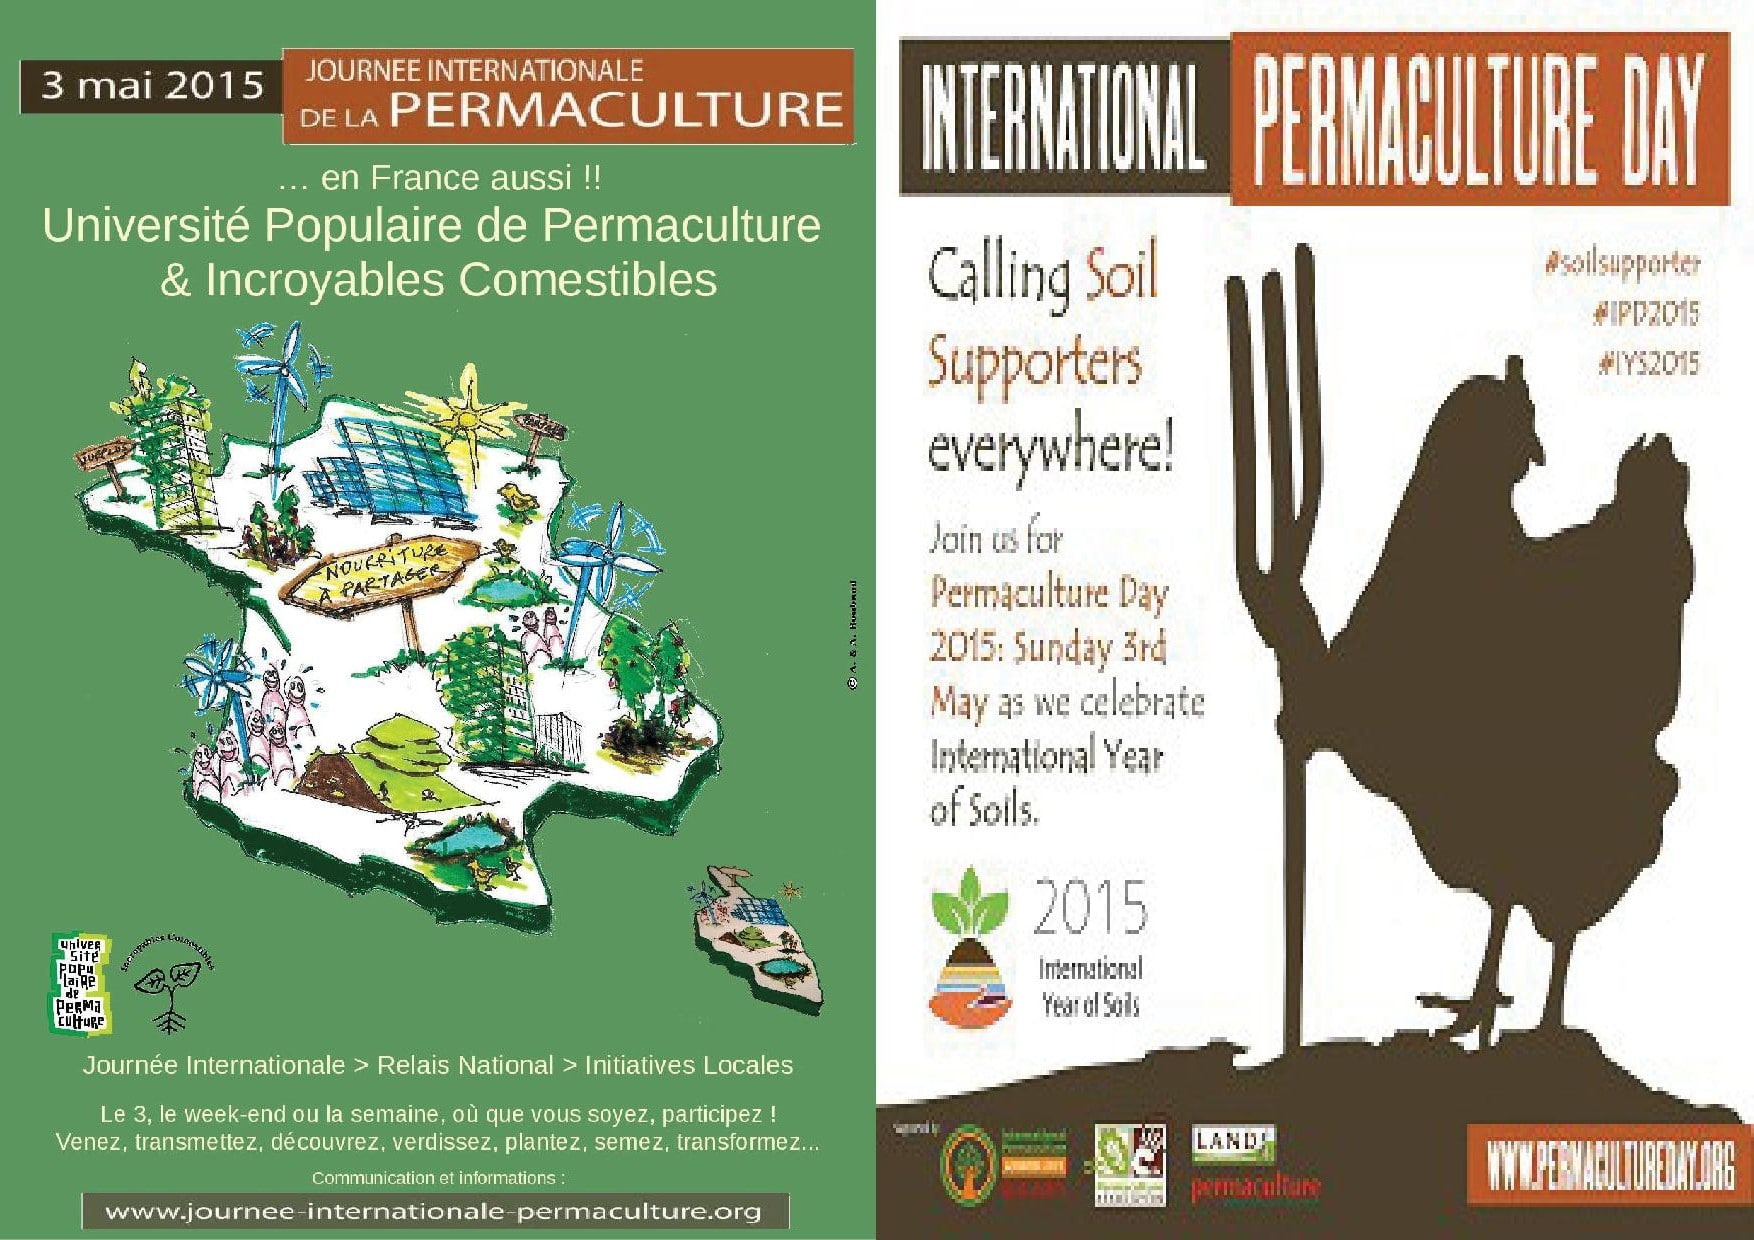 permaculture-incroyables-comestibles-journee-internationale-permaculture-incredible-edible